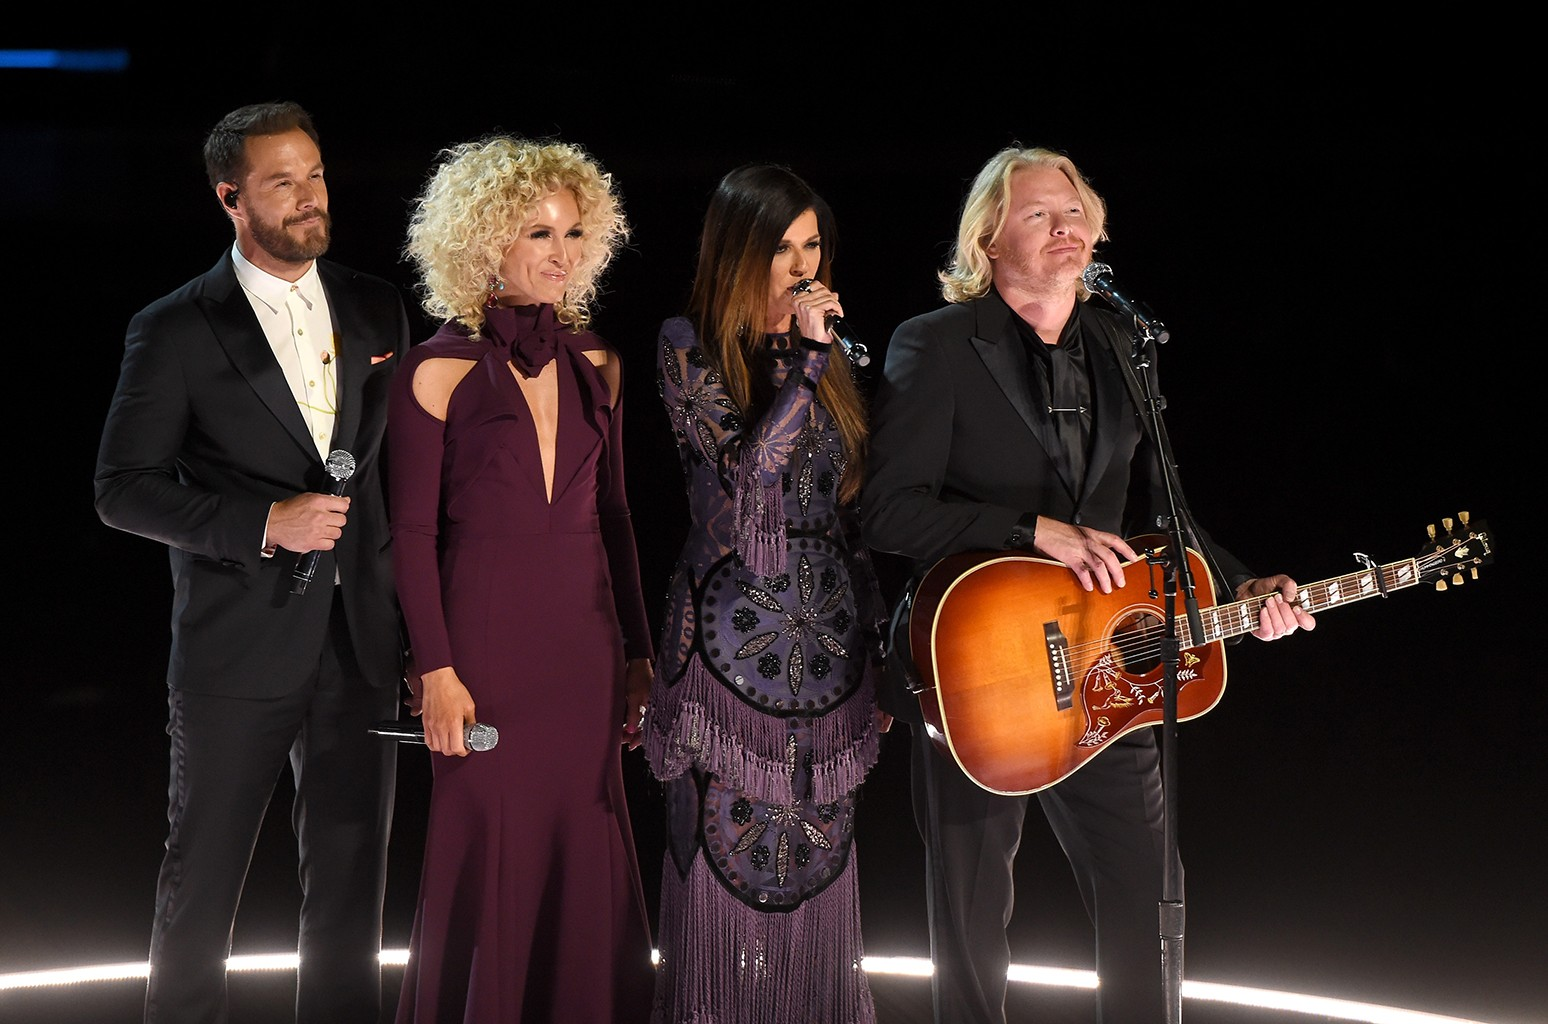 Little Big Town speak onstage during The 59th Grammy Awards at Staples Center on Feb. 12, 2017 in Los Angeles.